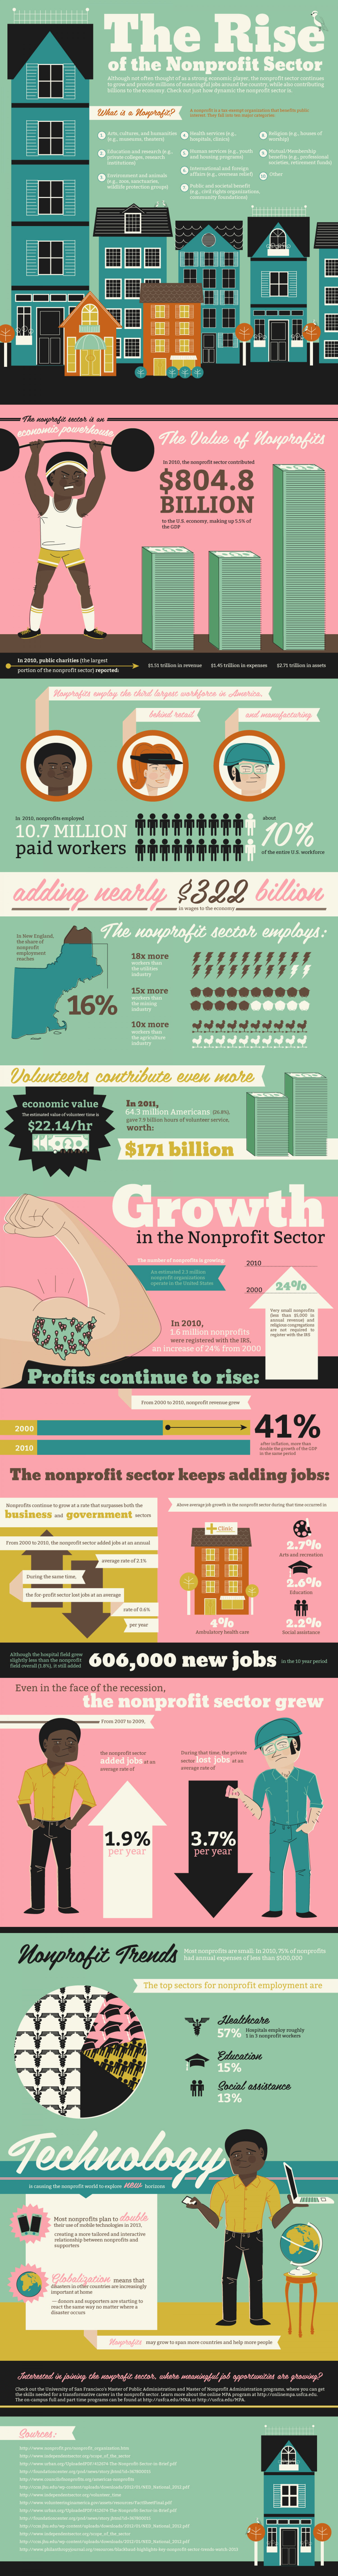 Rise of the Nonprofit Sector Infographic